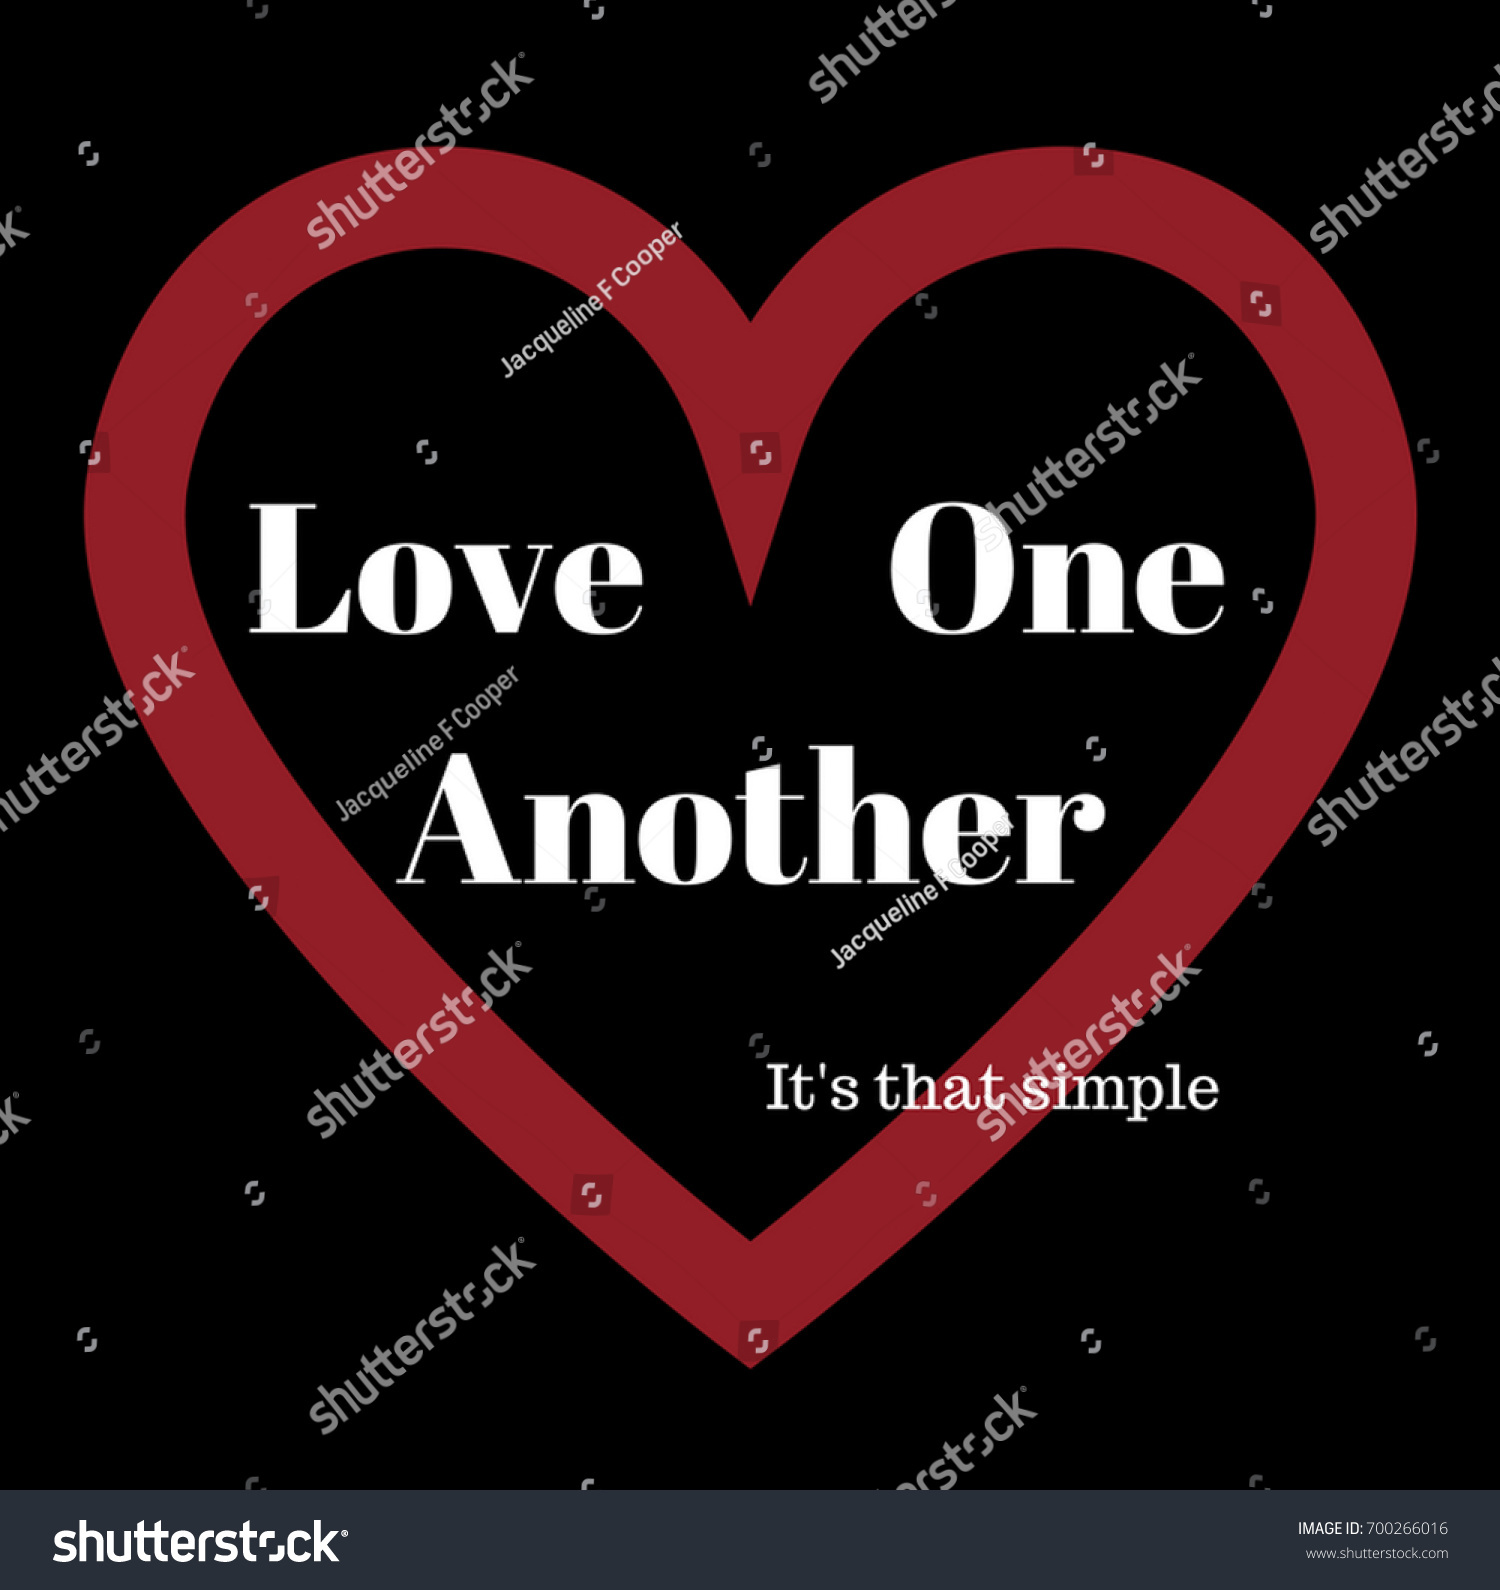 Love One Another Quotes | Inspirational Quote Golden Rule Love One Stock Illustration